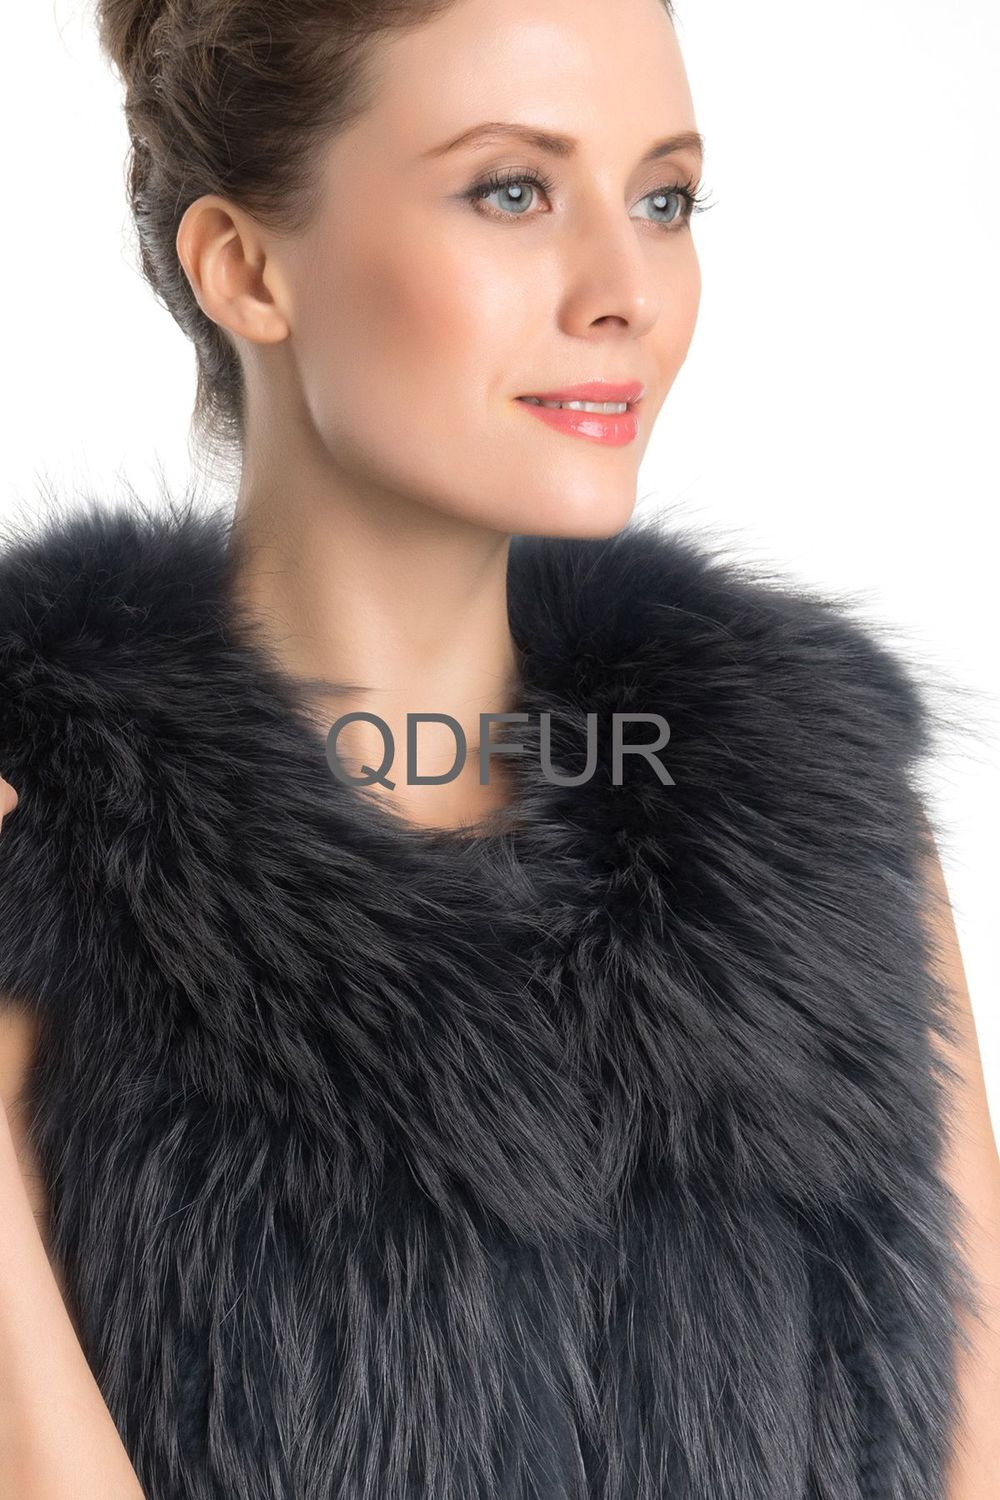 QD70726 Women Winter Genuine Natural Striped Raccoon Dog Fur Vest 2Colors